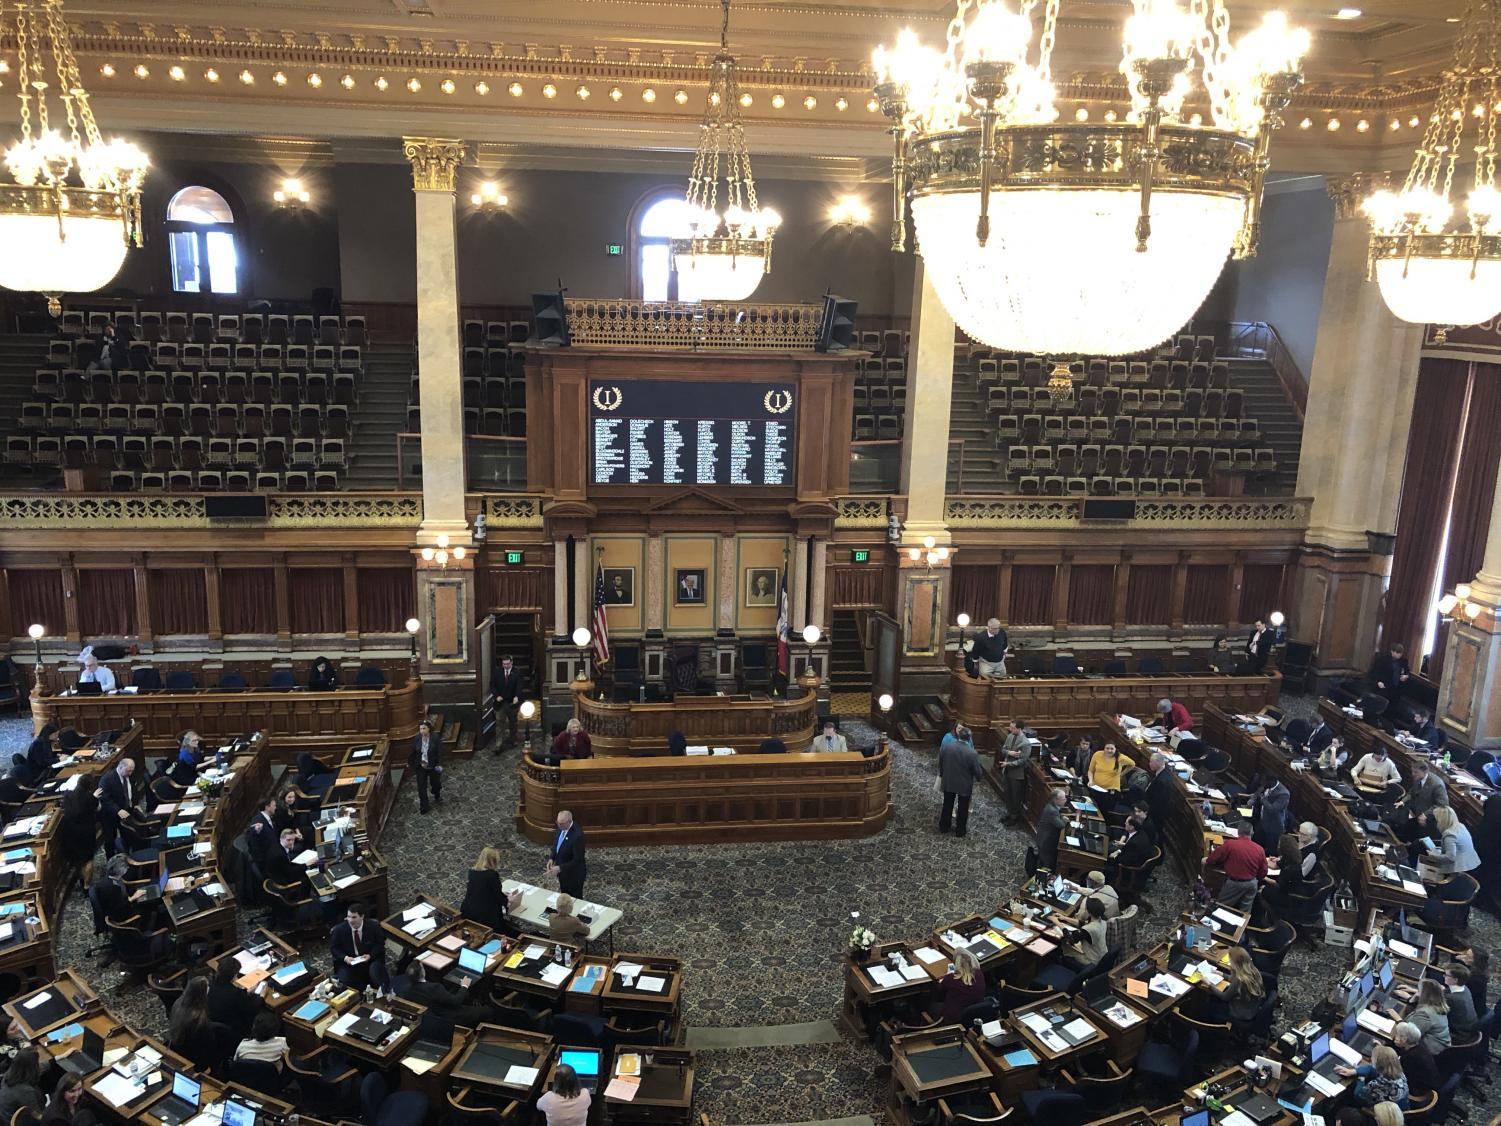 The Iowa Legislature gaveled in Monday, Jan. 14, 2019 to start the 2019 legislative session. Top issues Republican leadership and area legislators have identified include reducing taxes and government oversight, mental health, and felon-voting reform.